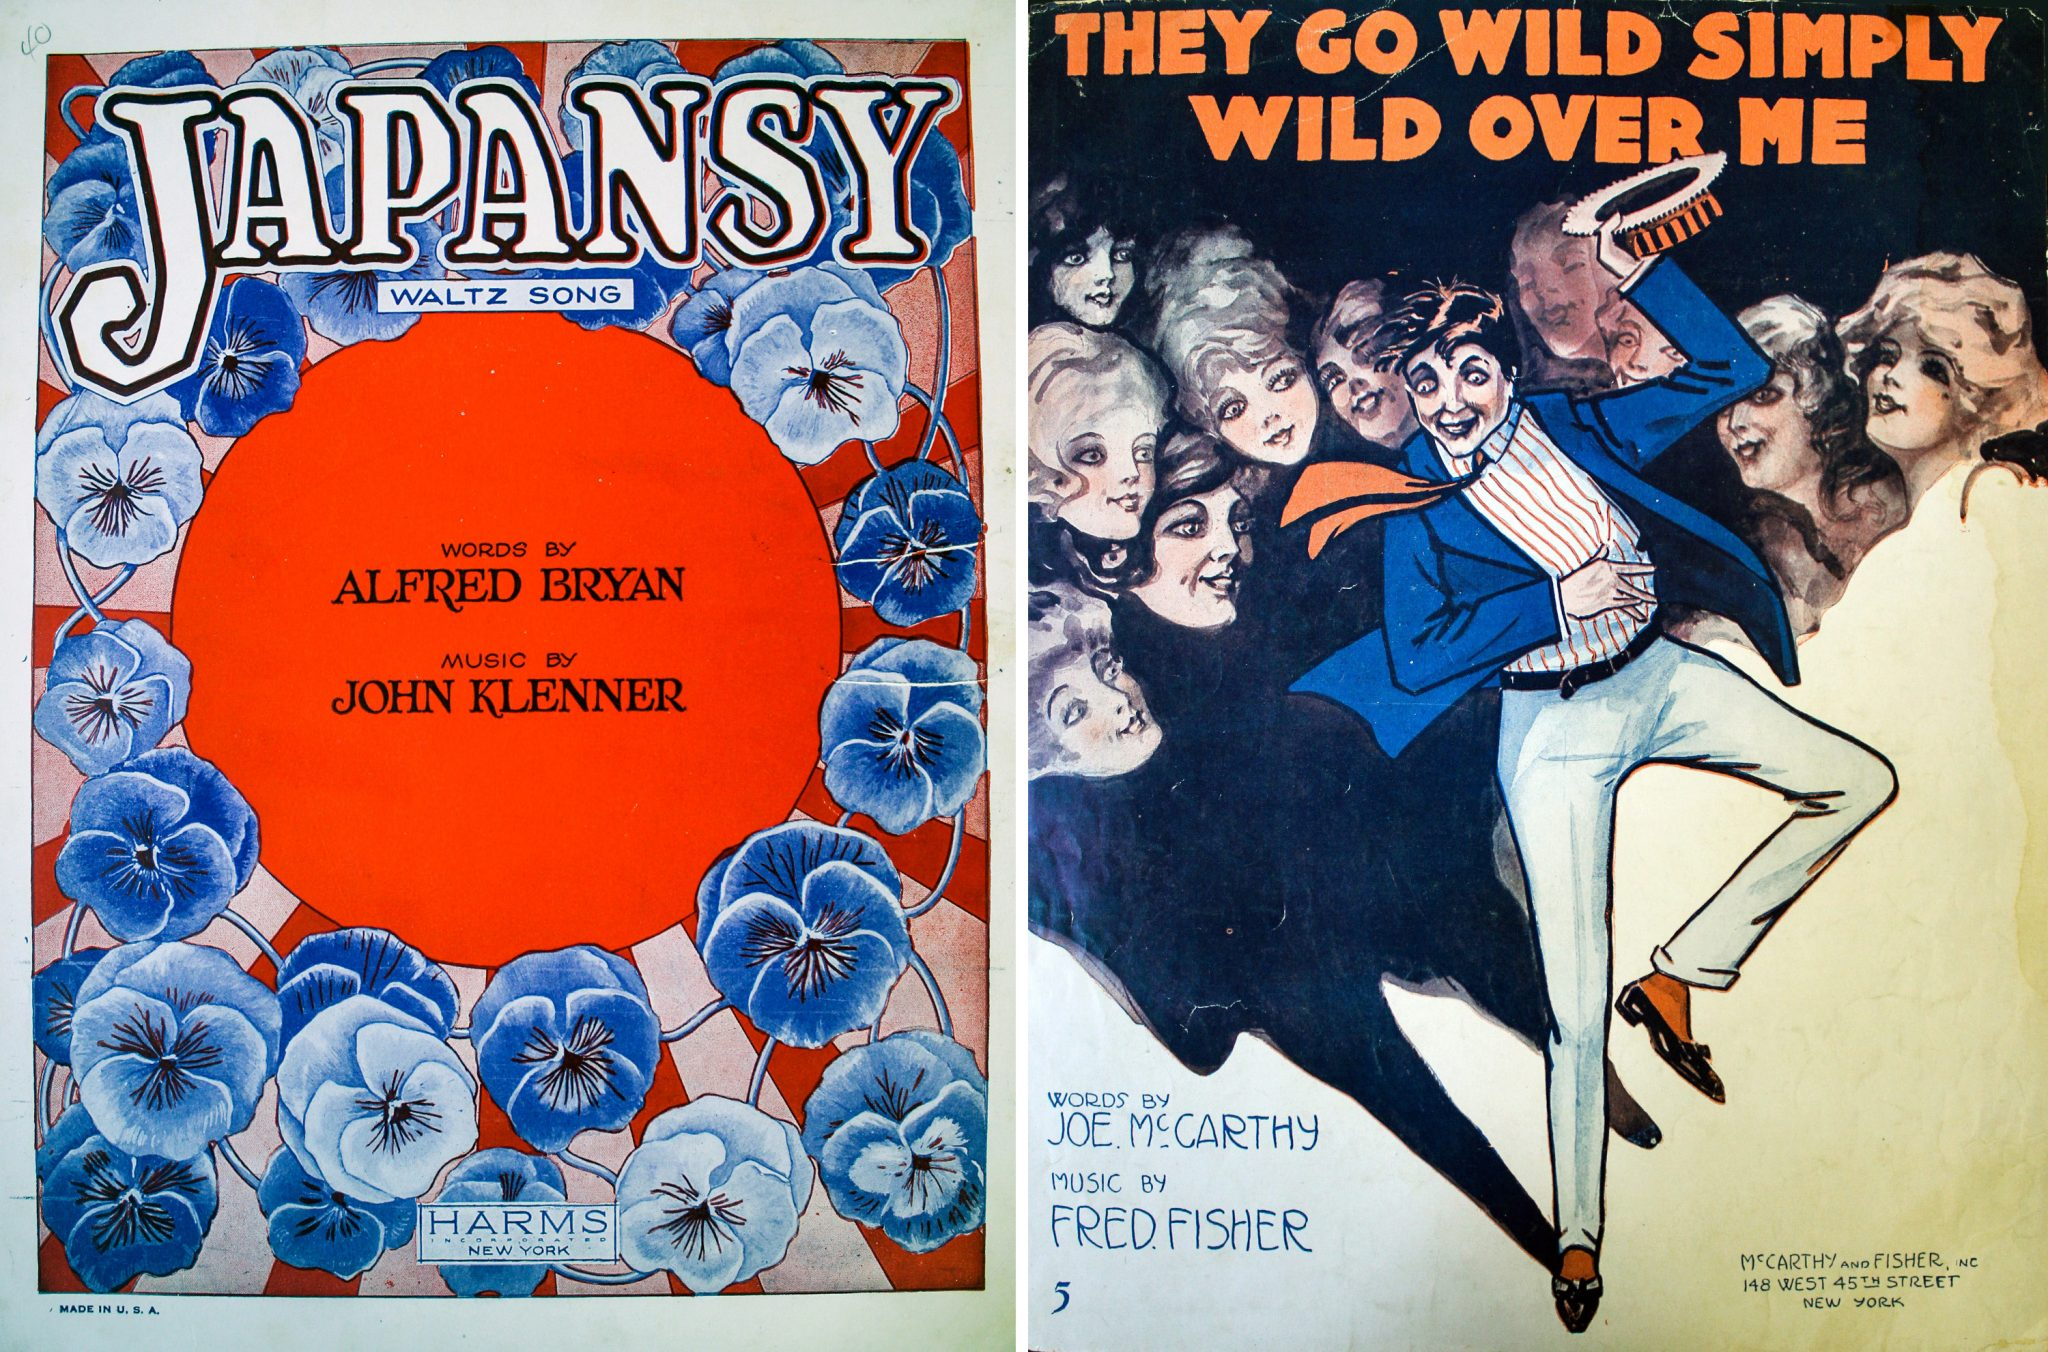 Sheet music cover, Pansy Craze era. Courtesy of ONE National Gay and Lesbian Archive